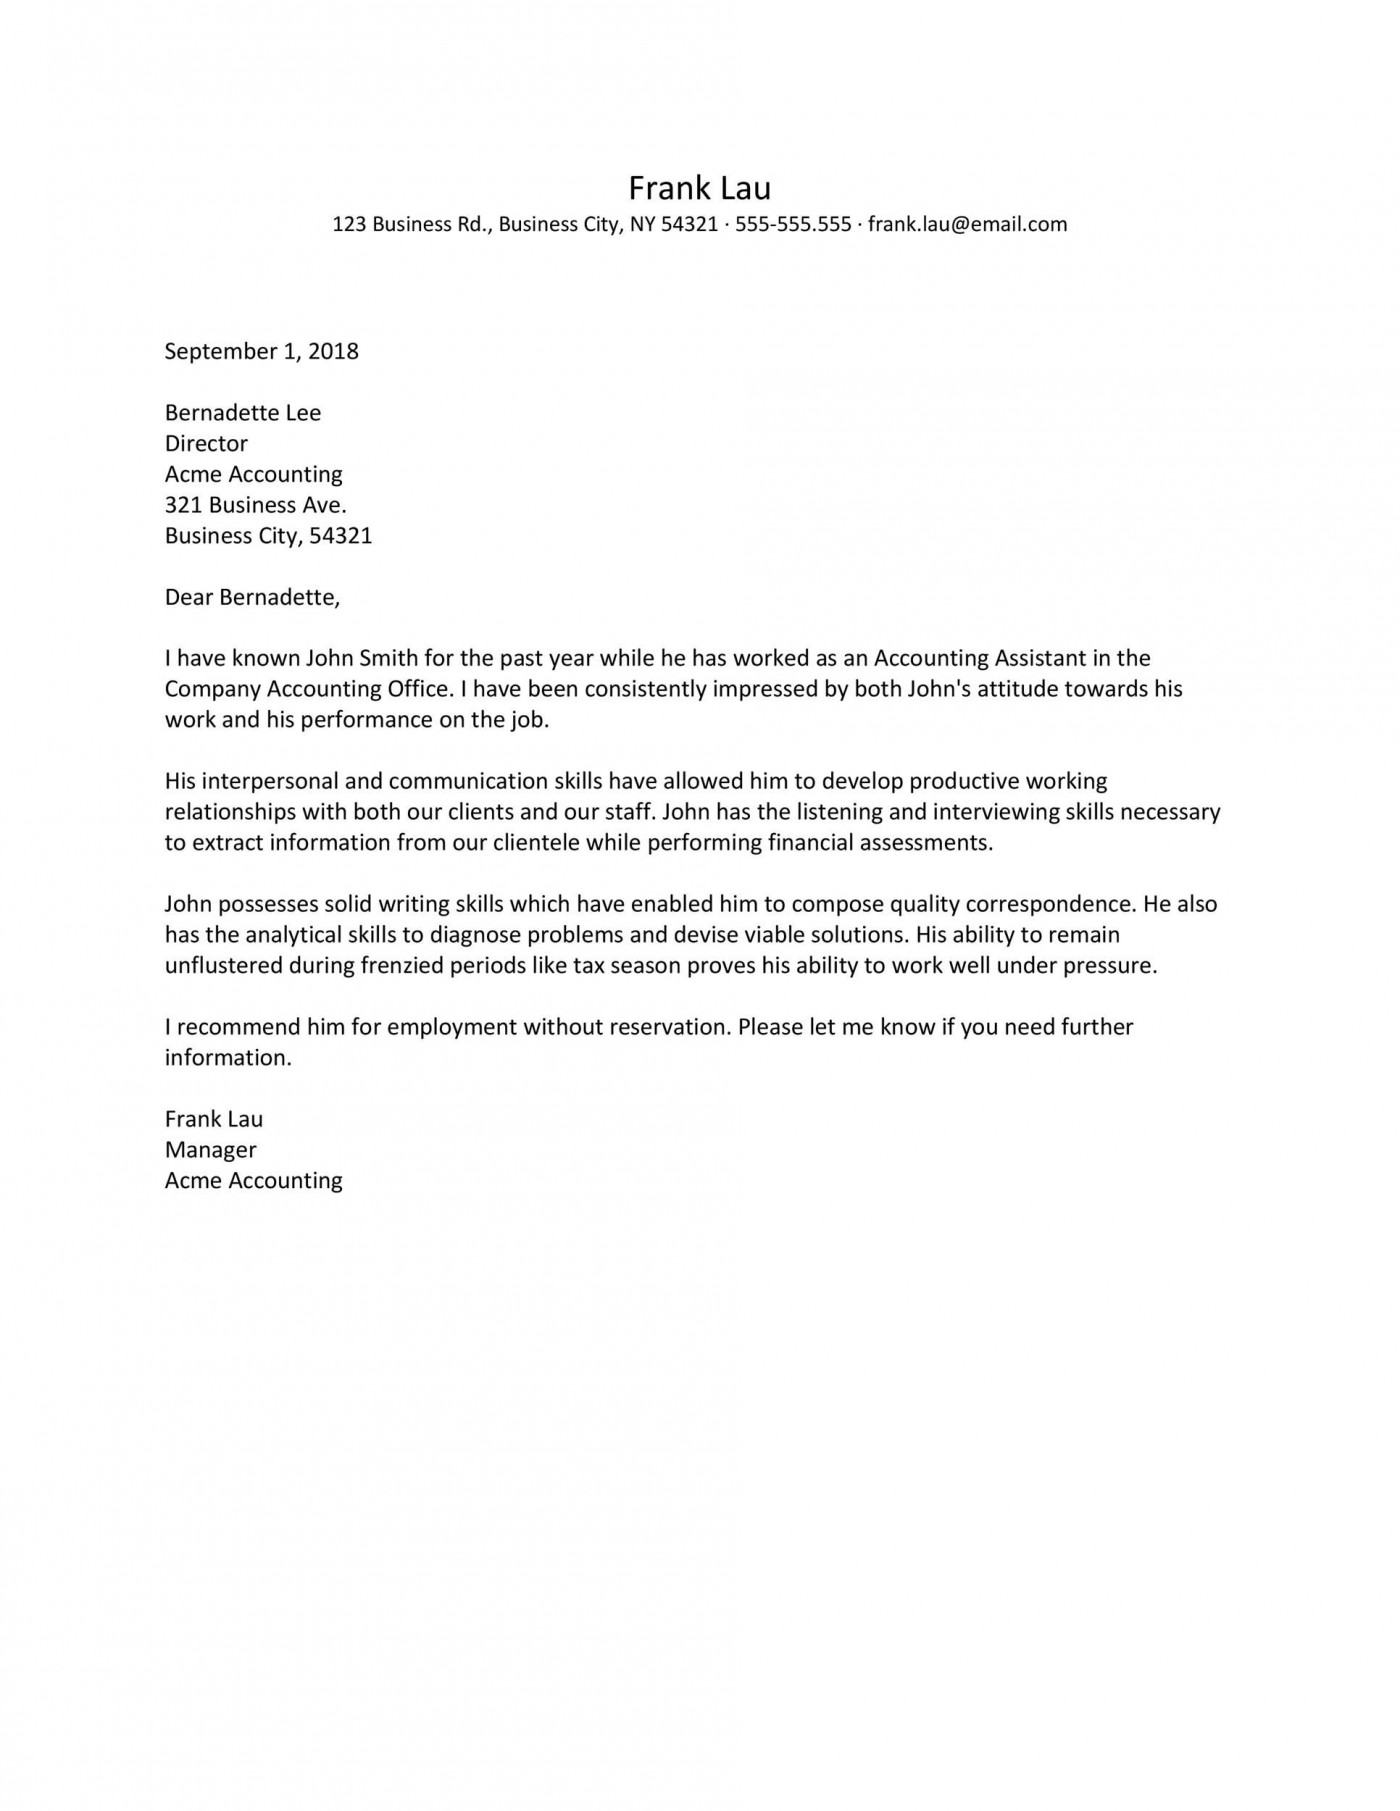 003 Astounding Free Reference Letter Template From Employer Picture  For Employment Word1400